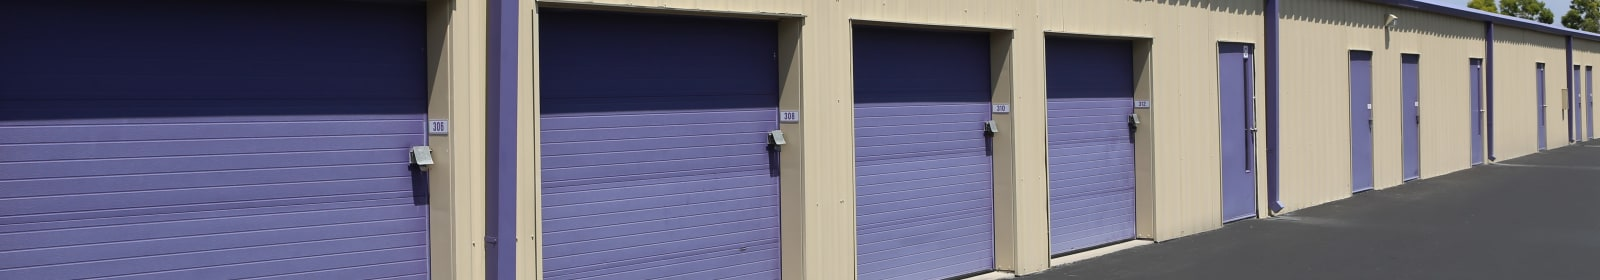 Self storage solutions in Gypsum, Colorado